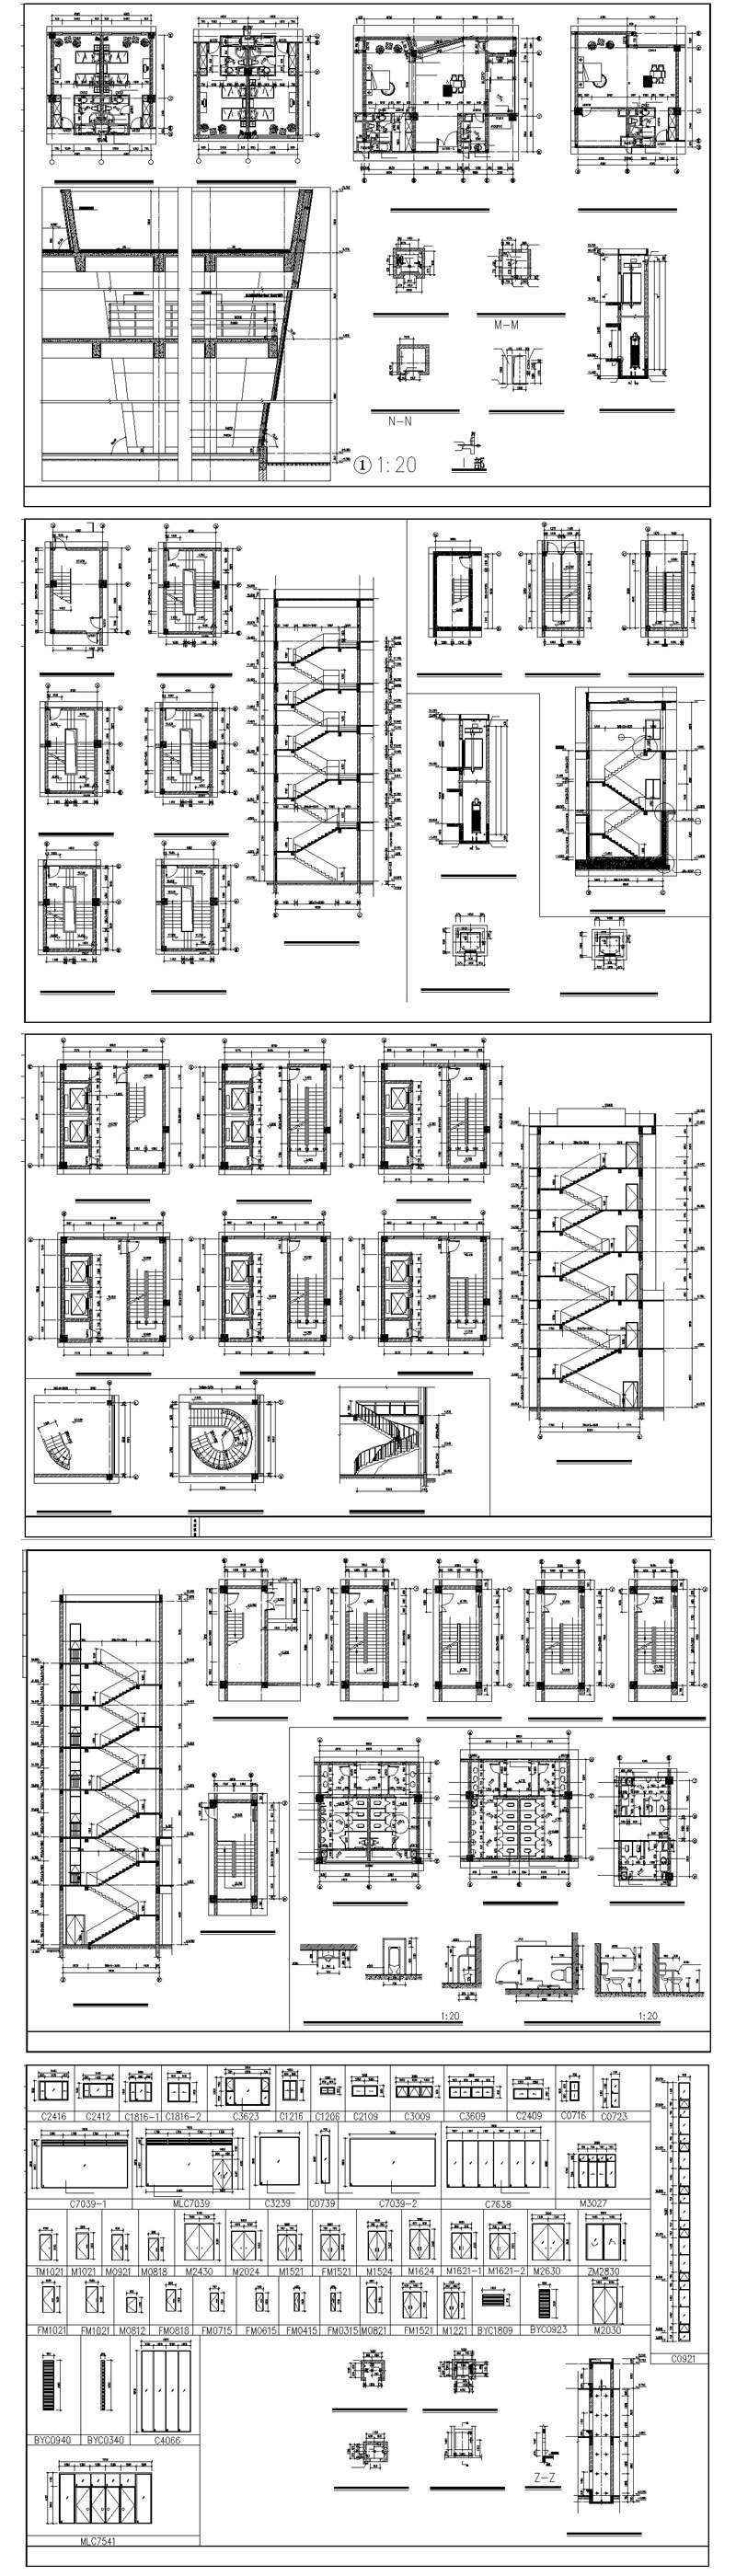 Autocad Blocks Stadium Cad Blocks Stadium Gymnasium Track And Field Playground Sports Hall Basketball Court Tennis Court Badminton Court Long Jump